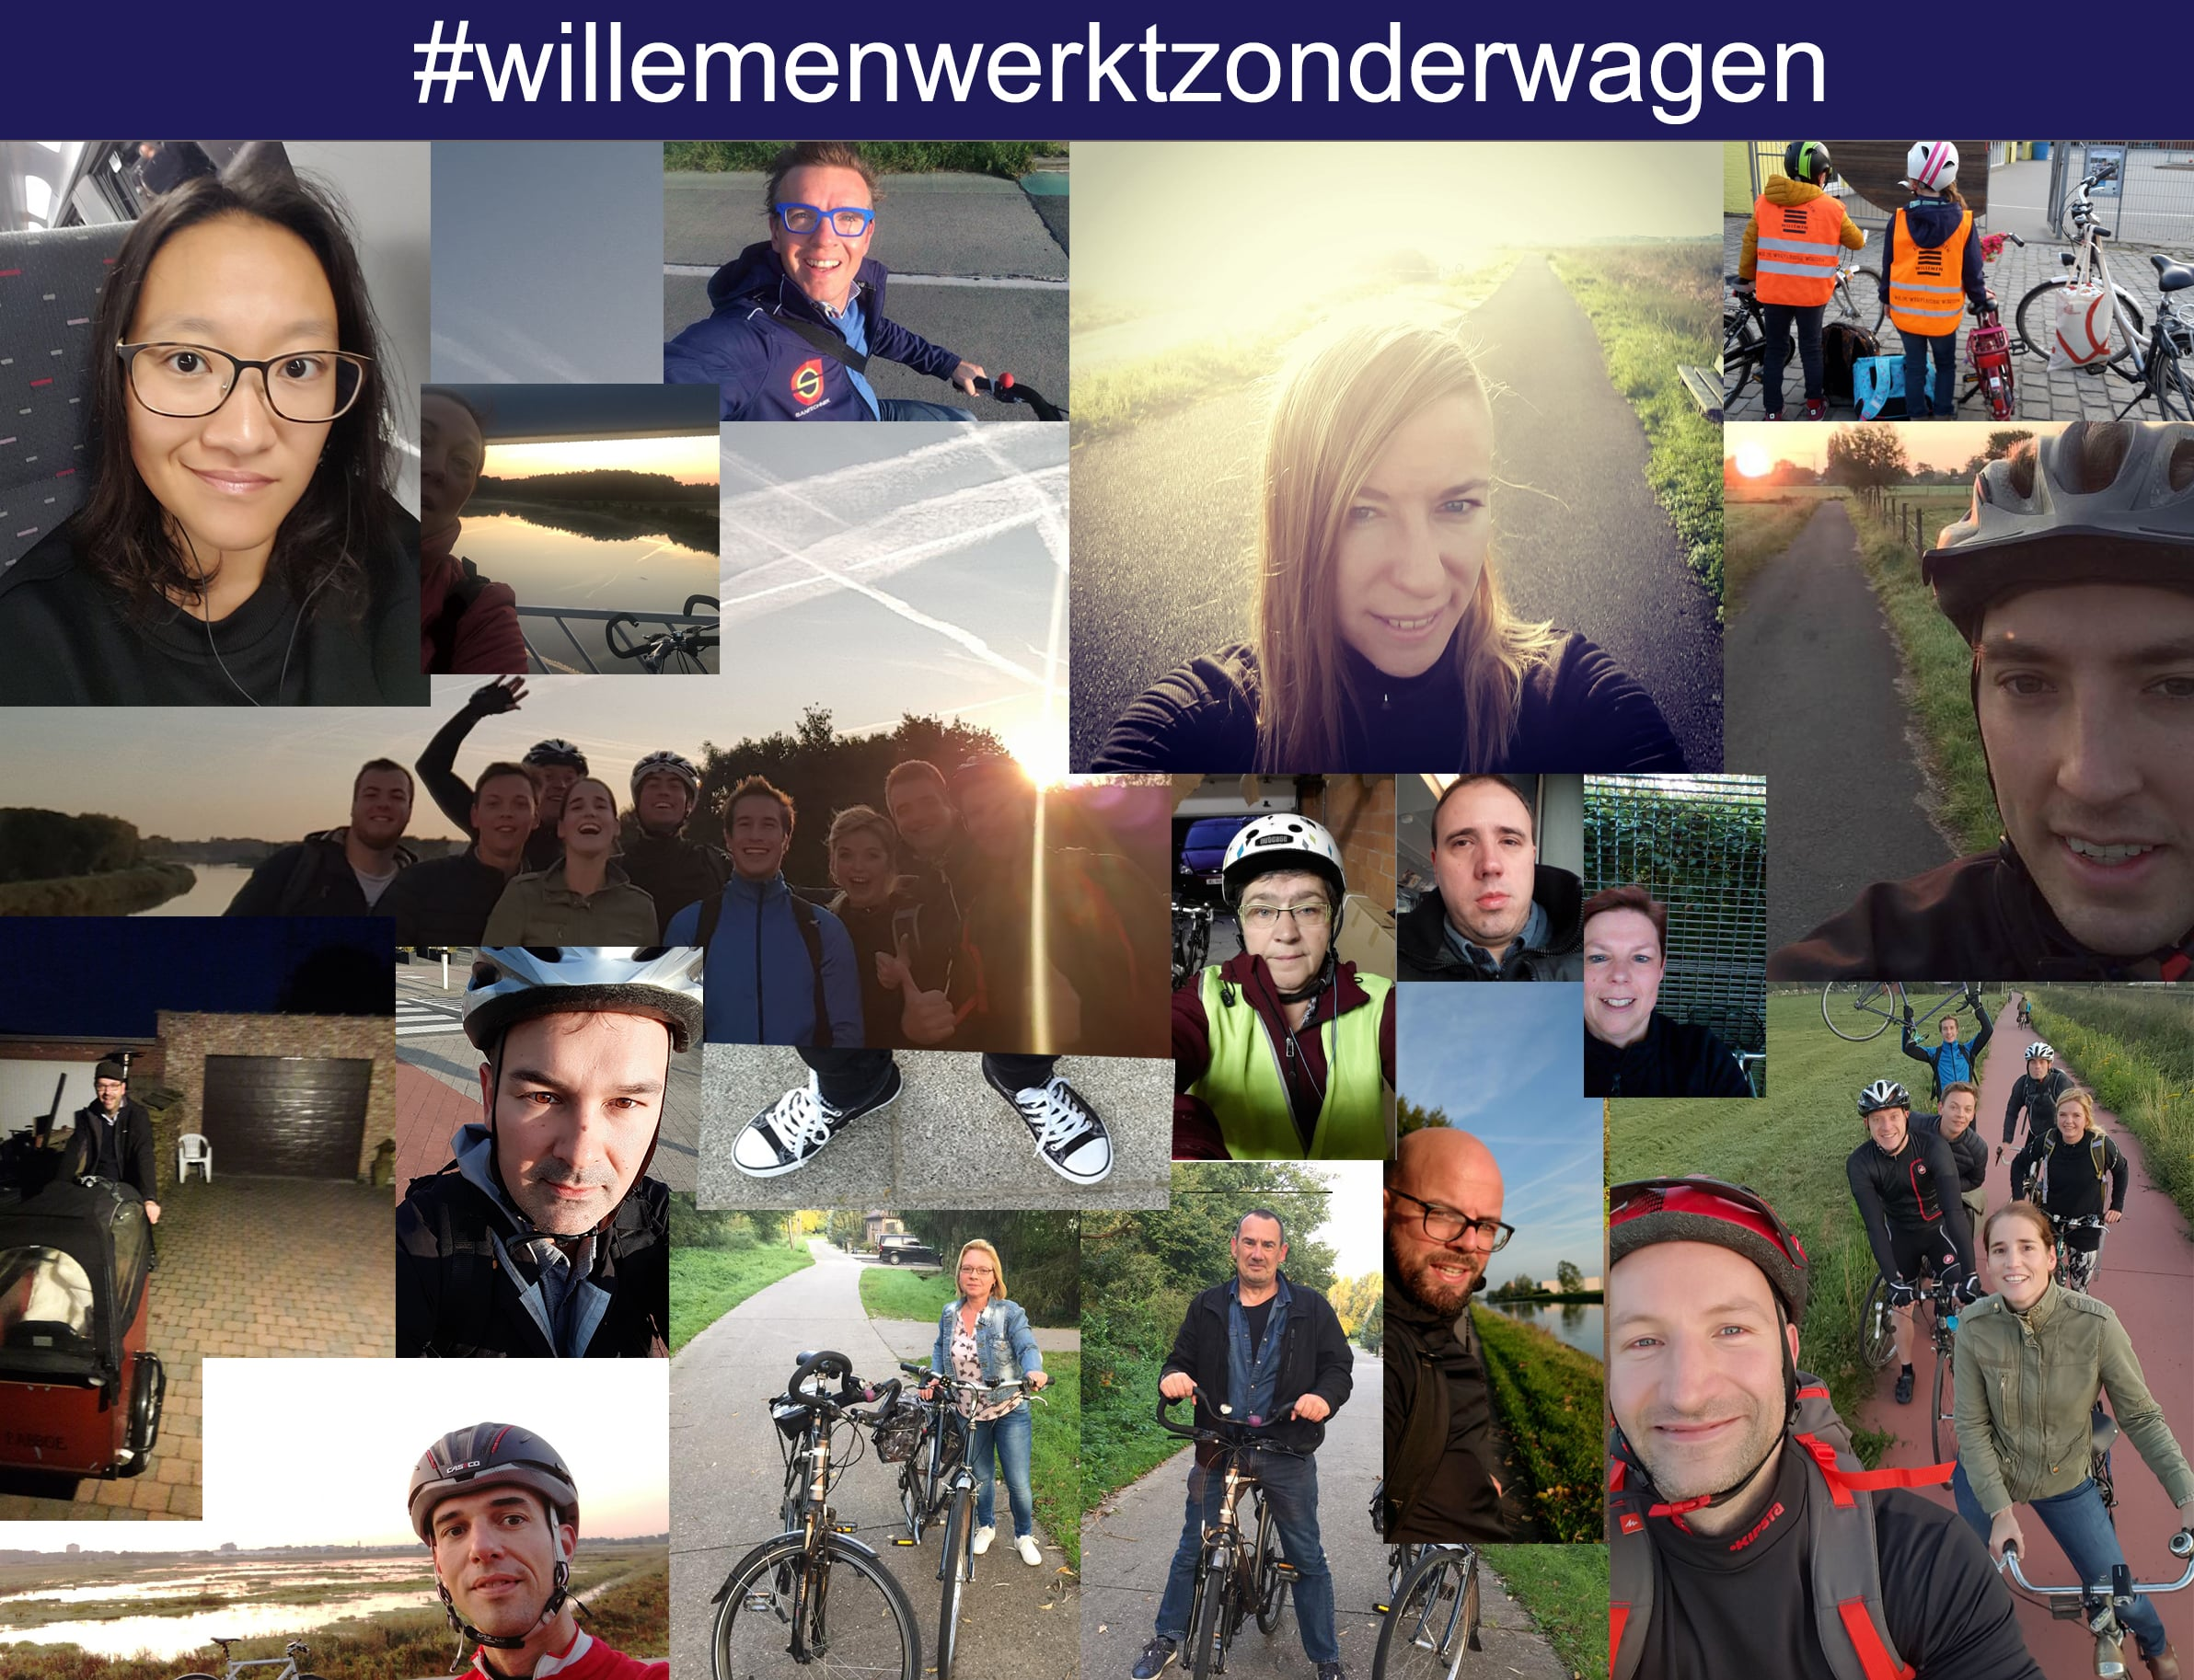 Respect - MVO - Car free day Willemenwerktzonderwagen